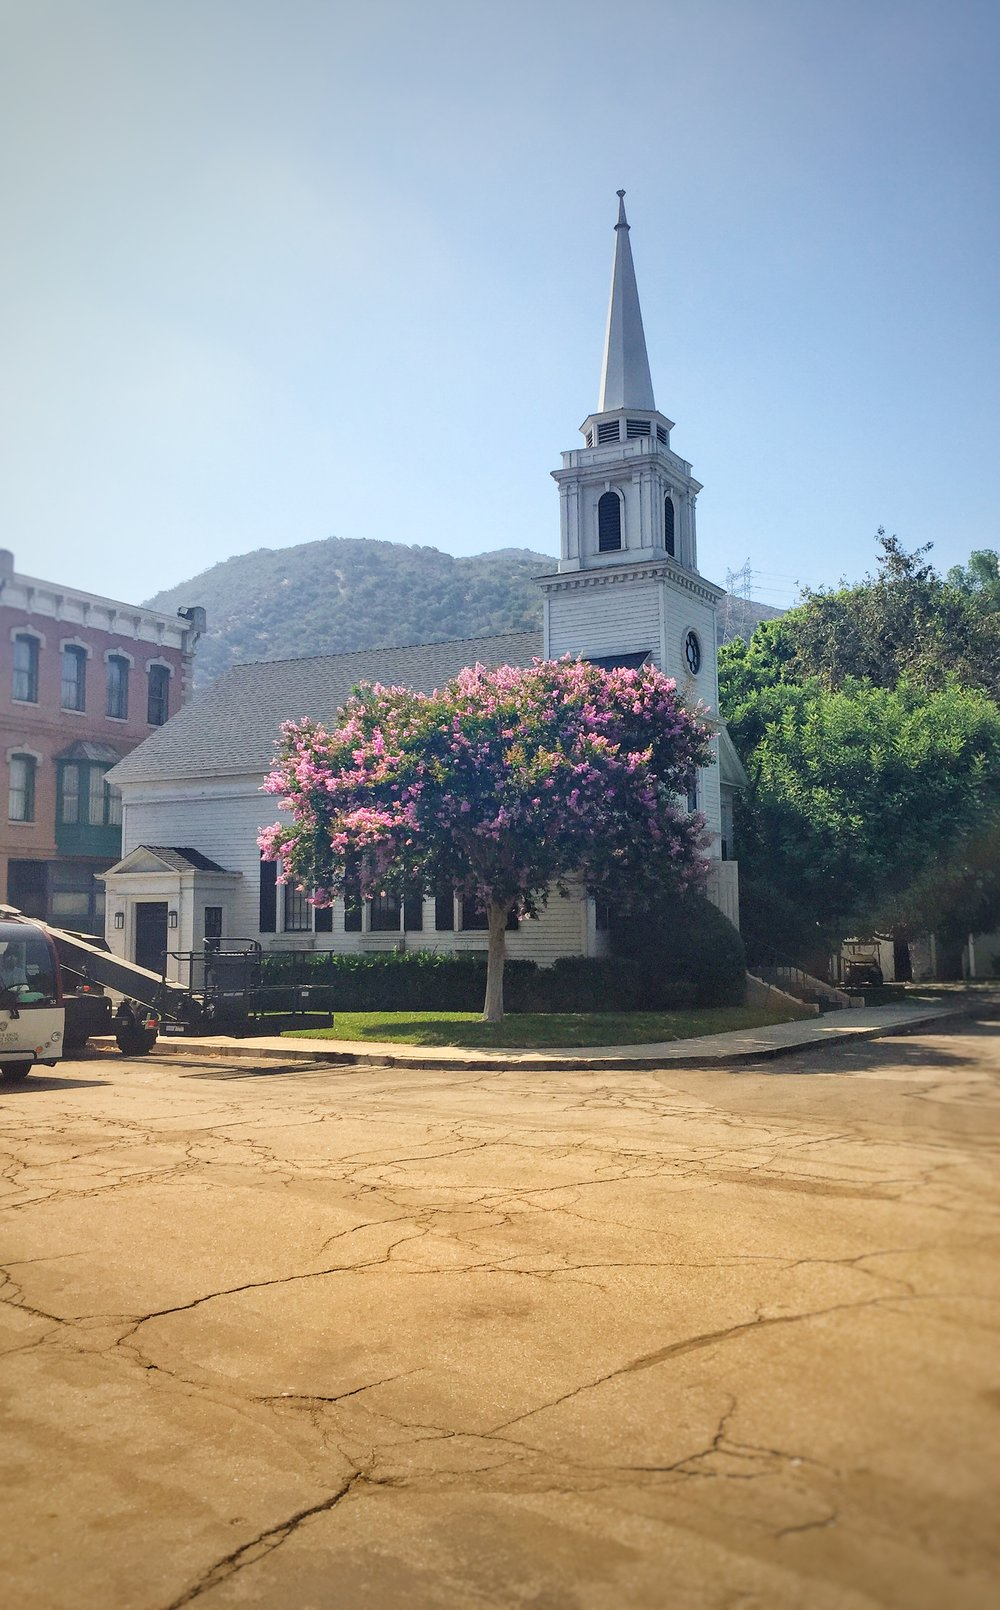 Chapel in the Warner Bros backlot. This lovely set can be seen in  Gilmore Girls.